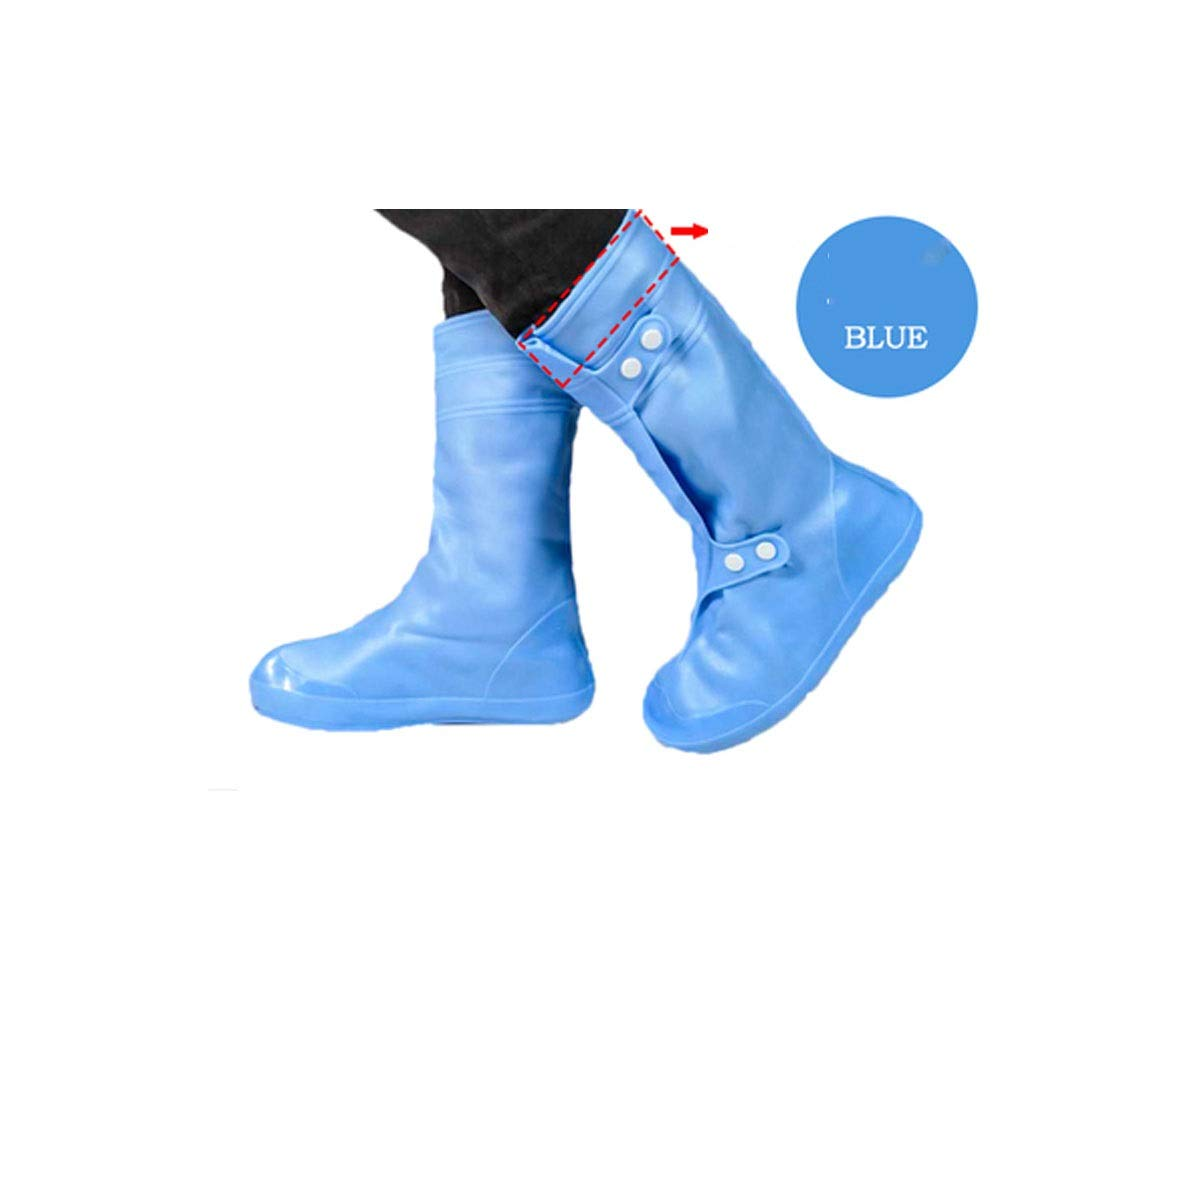 KAIYITONG Shoe Cover, Rain Shoe Cover, High Tube Wear Rubber Outdoor Motorcycle Rain Men and Women Non-Slip Foot Cover, More Colors Multi-Purpose Shoe Covers (Color : Blue, Size : XL) by KAIYITONG